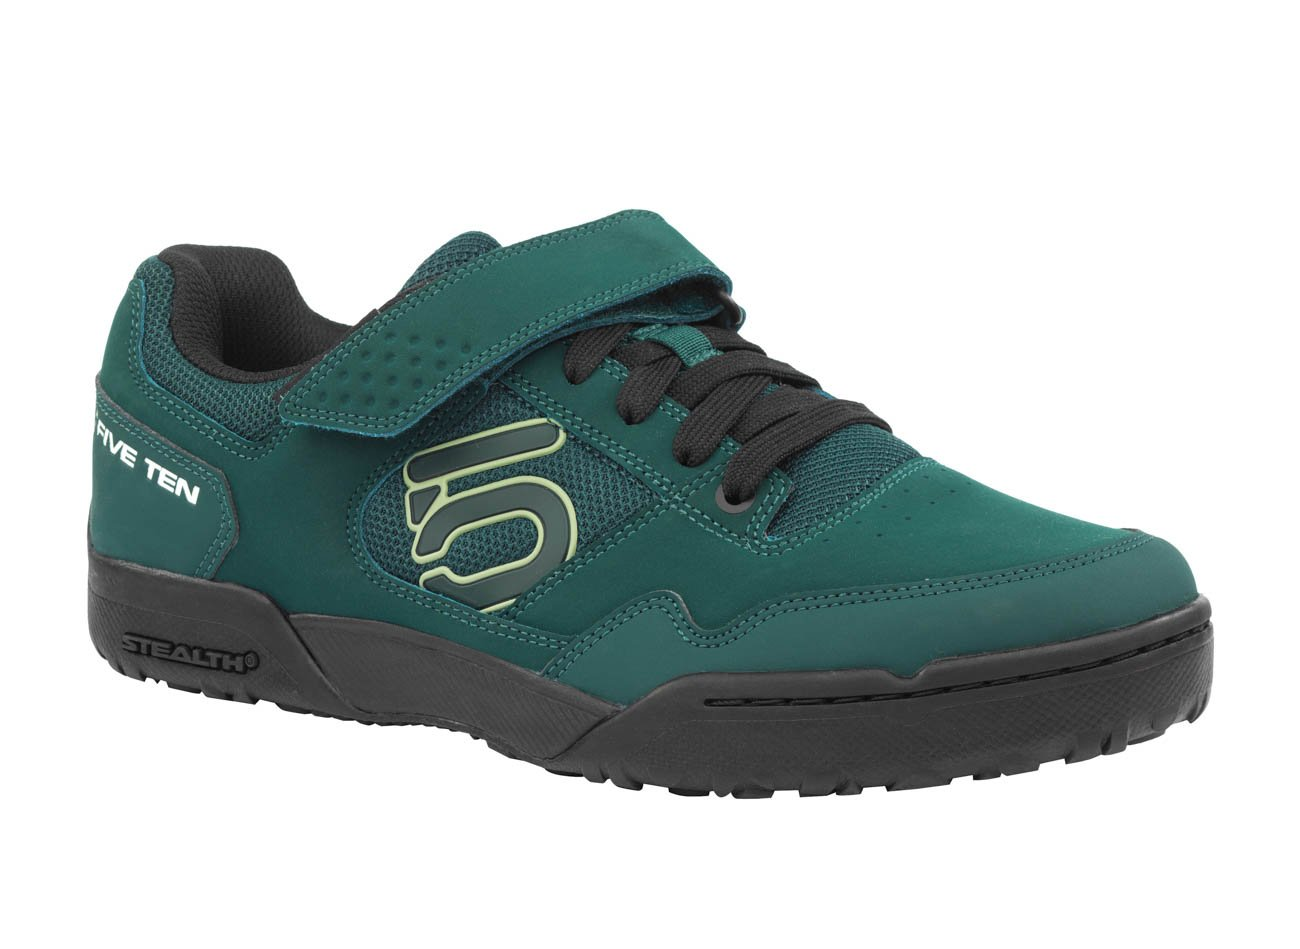 Five Ten MTB-Schuhe Maltese Falcon Grün Gr. 45